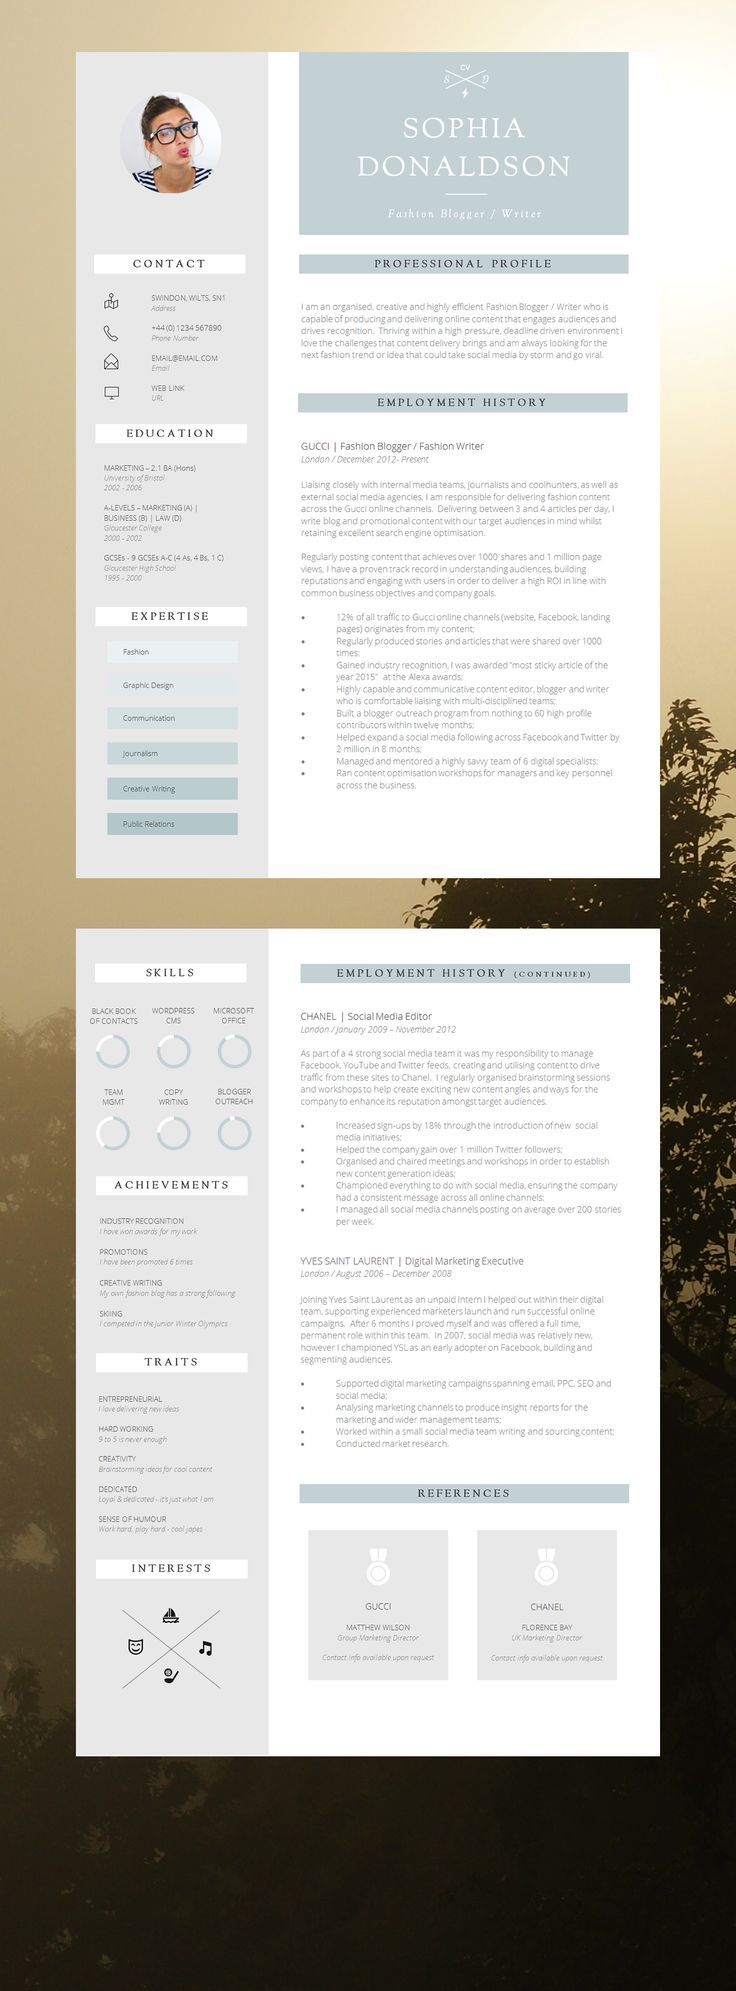 how to write a perfect cover letter%0A CV Template   Modern CV Design  Don u    t underestimate the power of a  Professional    Modern Cv TemplateResume